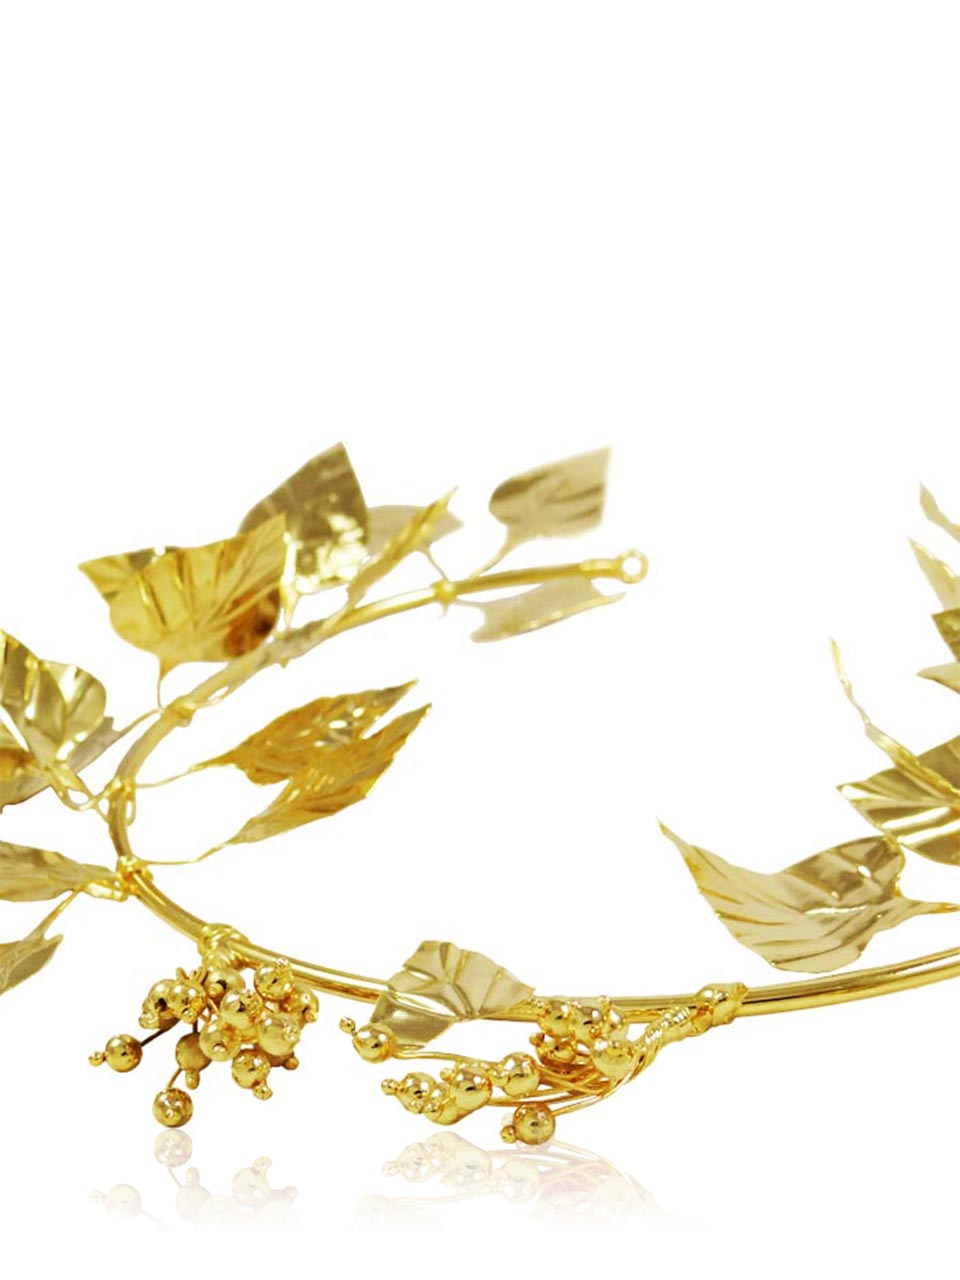 Ivy Wreath, Gold.